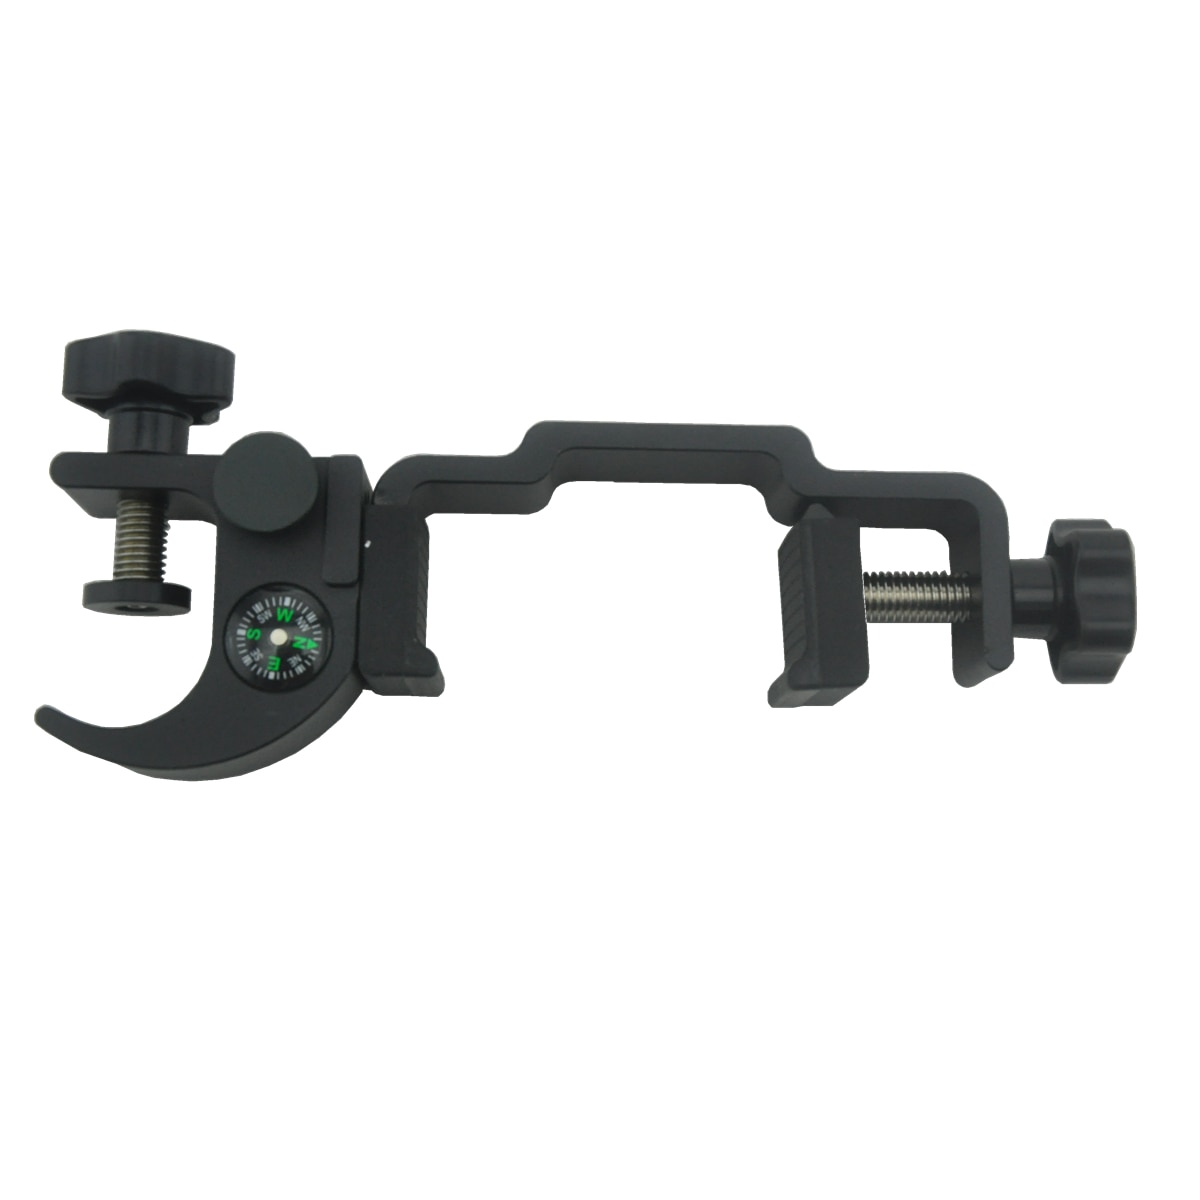 Brand new Corrosion resistant GNSS GPS Pole Clamp with compass &Open Data Collector Cradle pole holder mount dropshipping